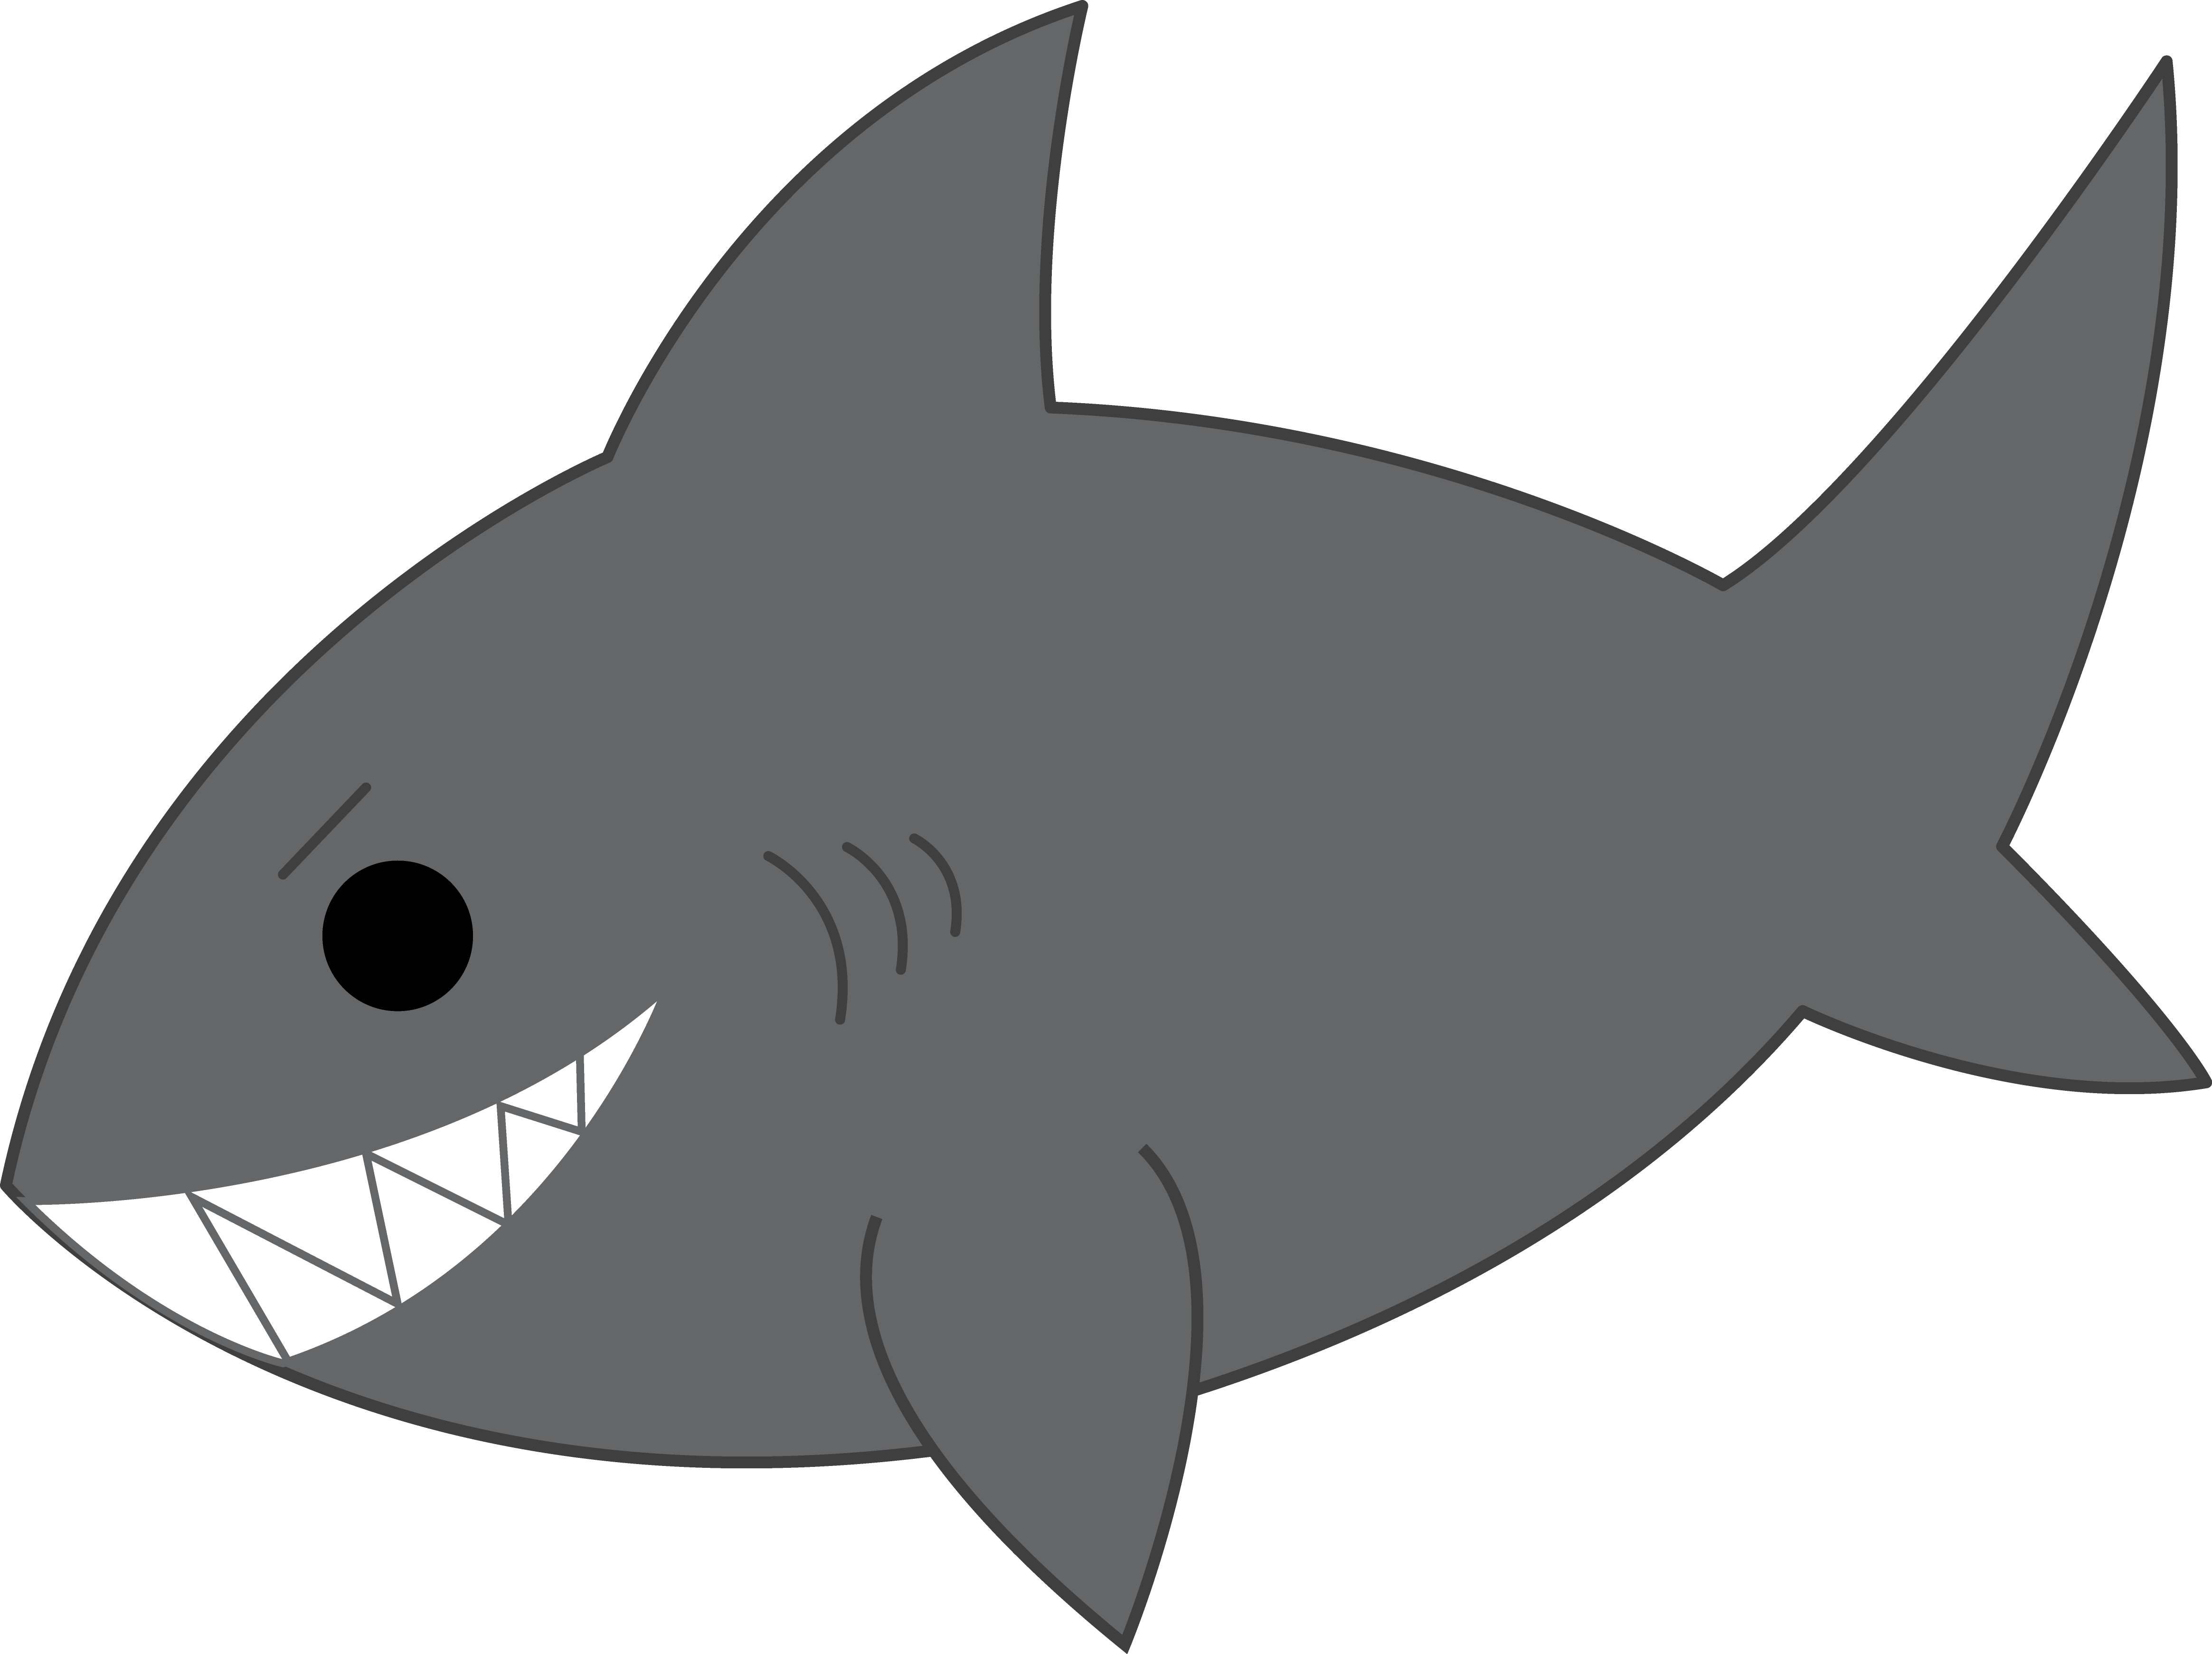 Shark clipart #2, Download drawings